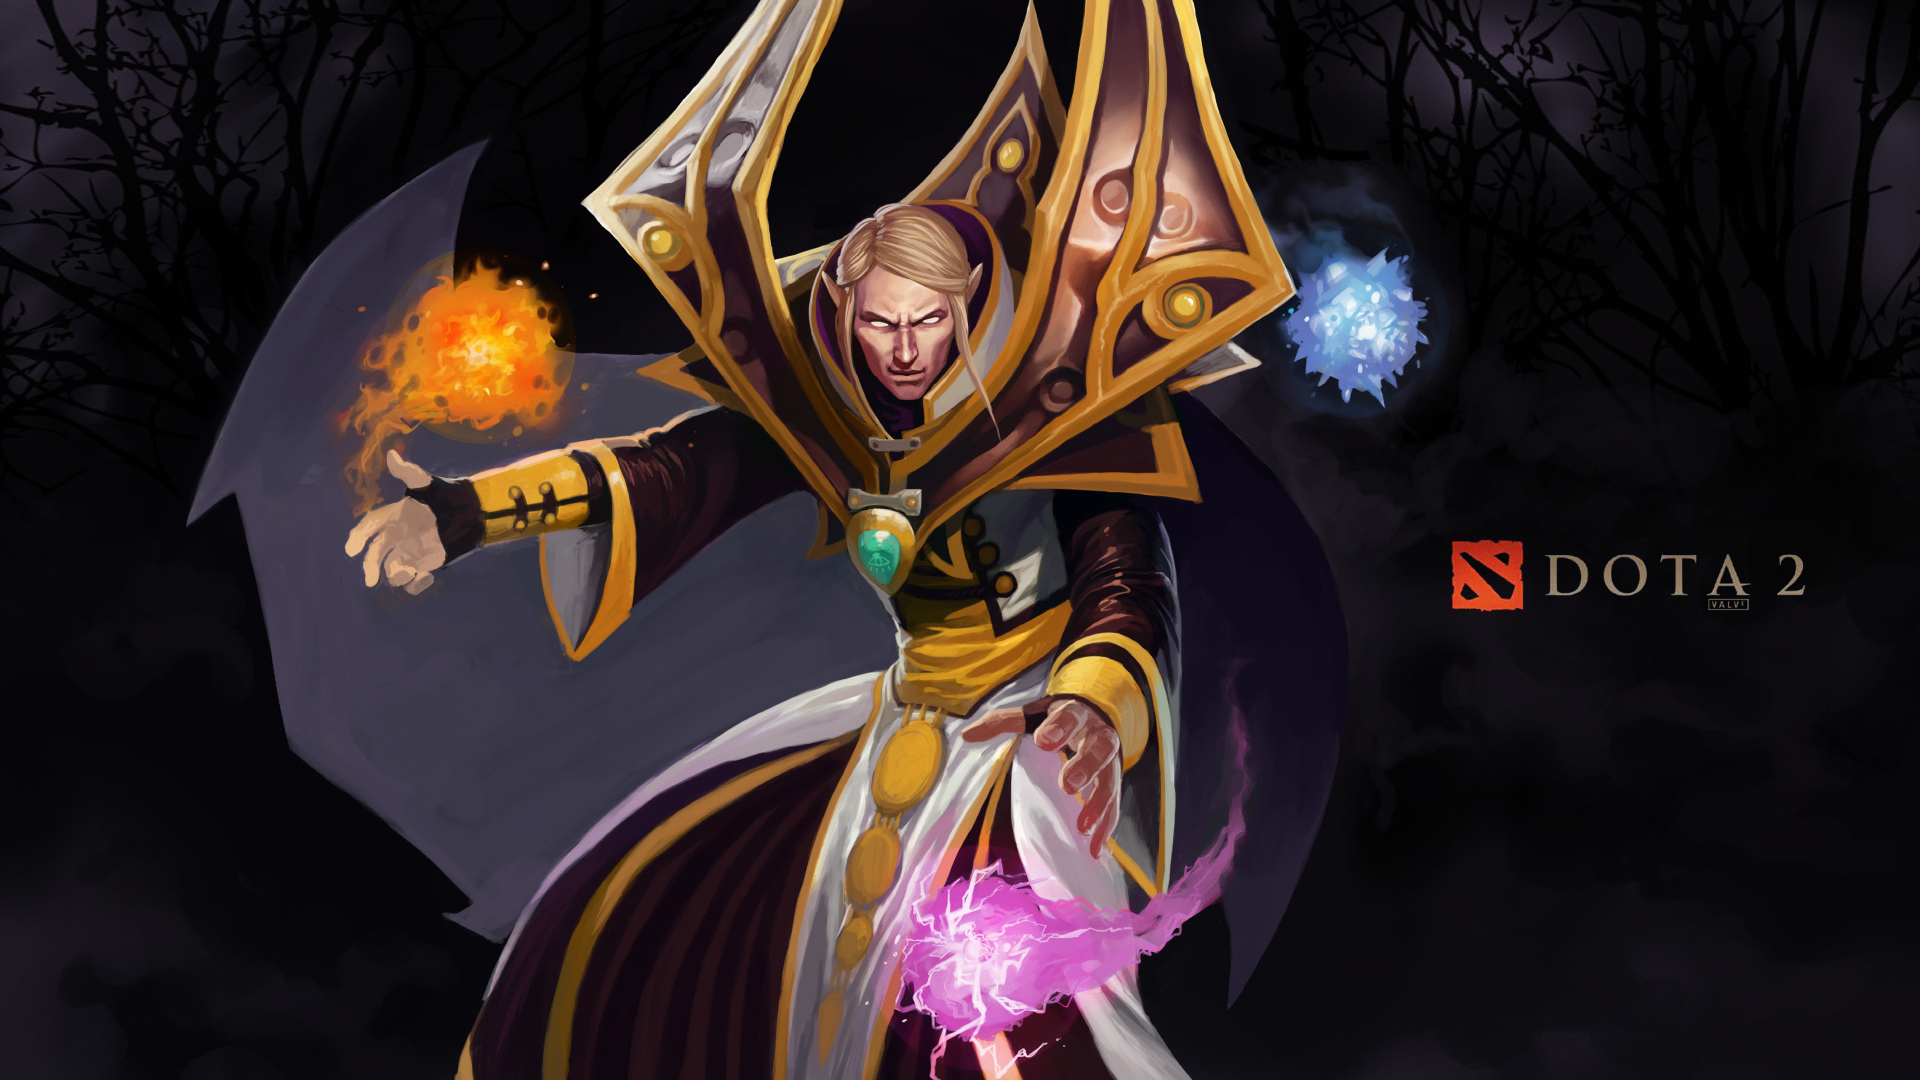 Dota 2 Invoker 1080p 0m Wallpaper HD 1920x1080